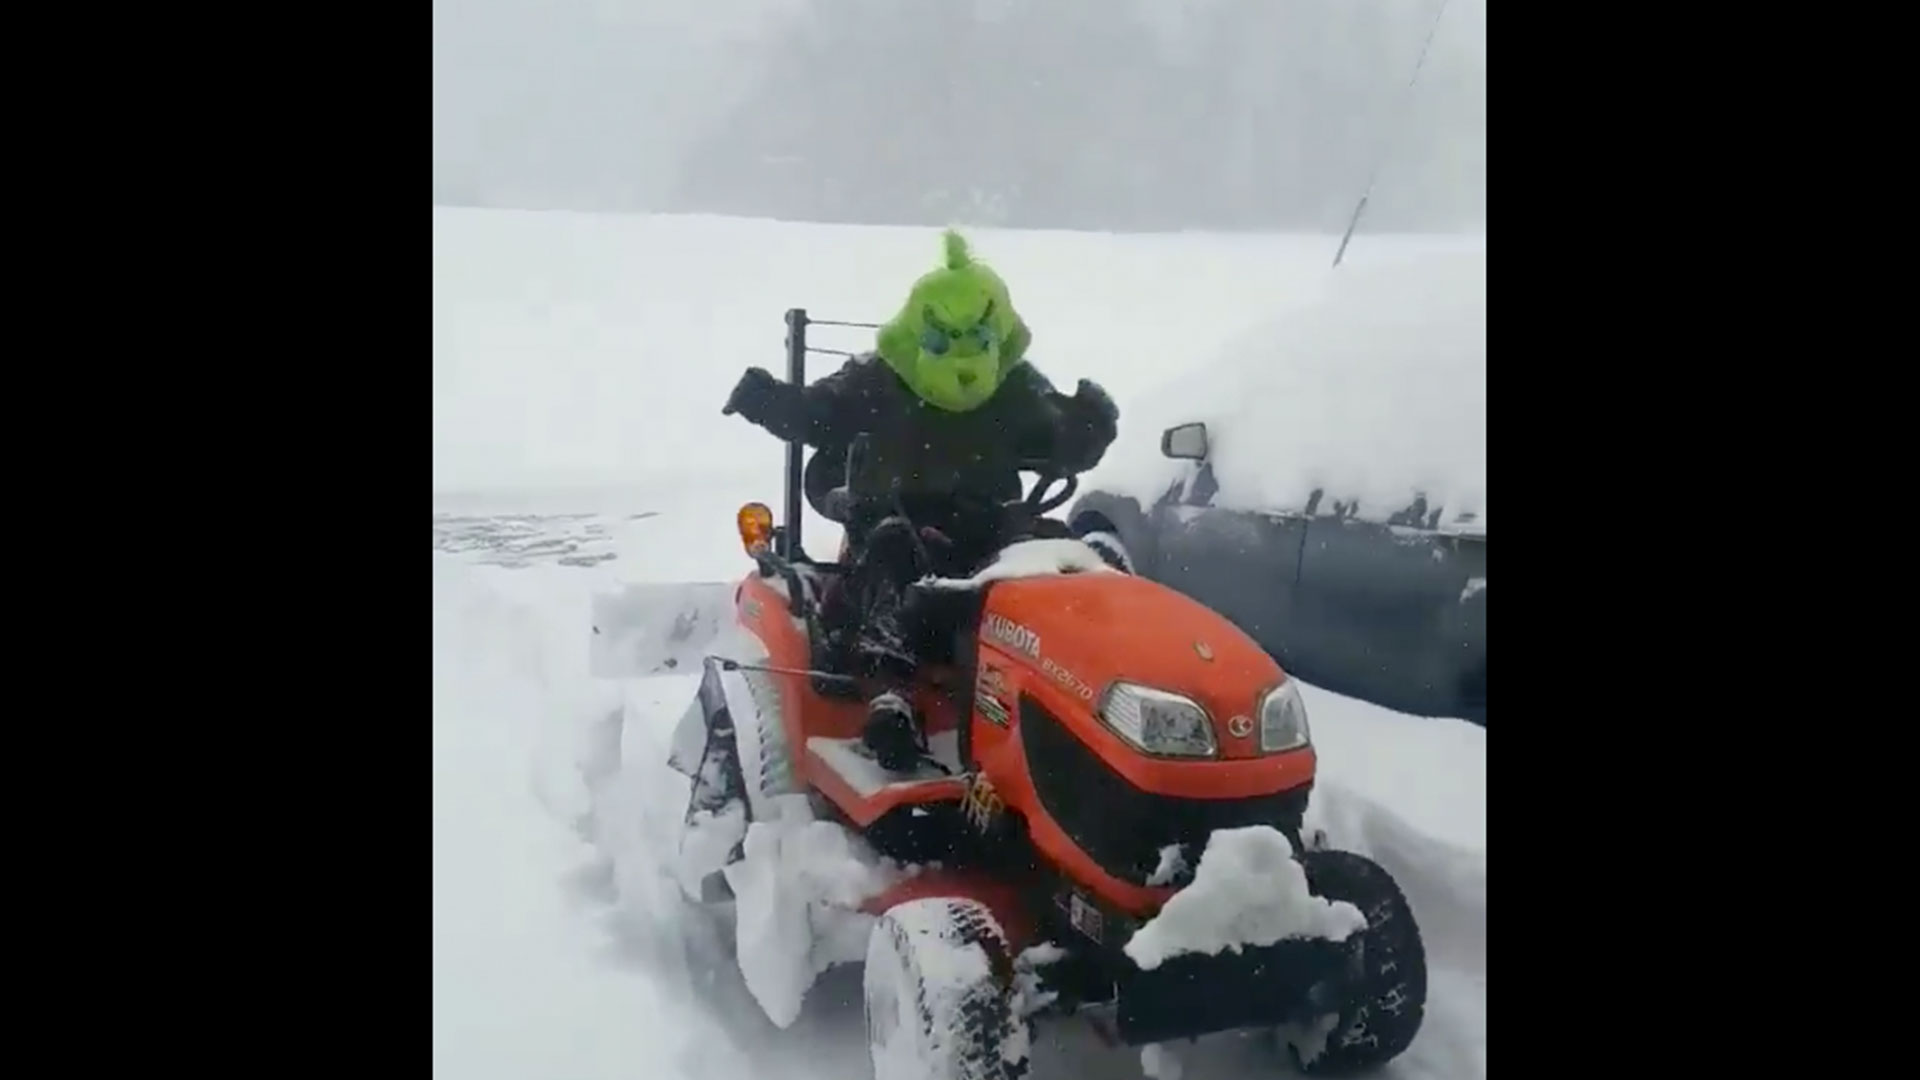 Plowing Grinch